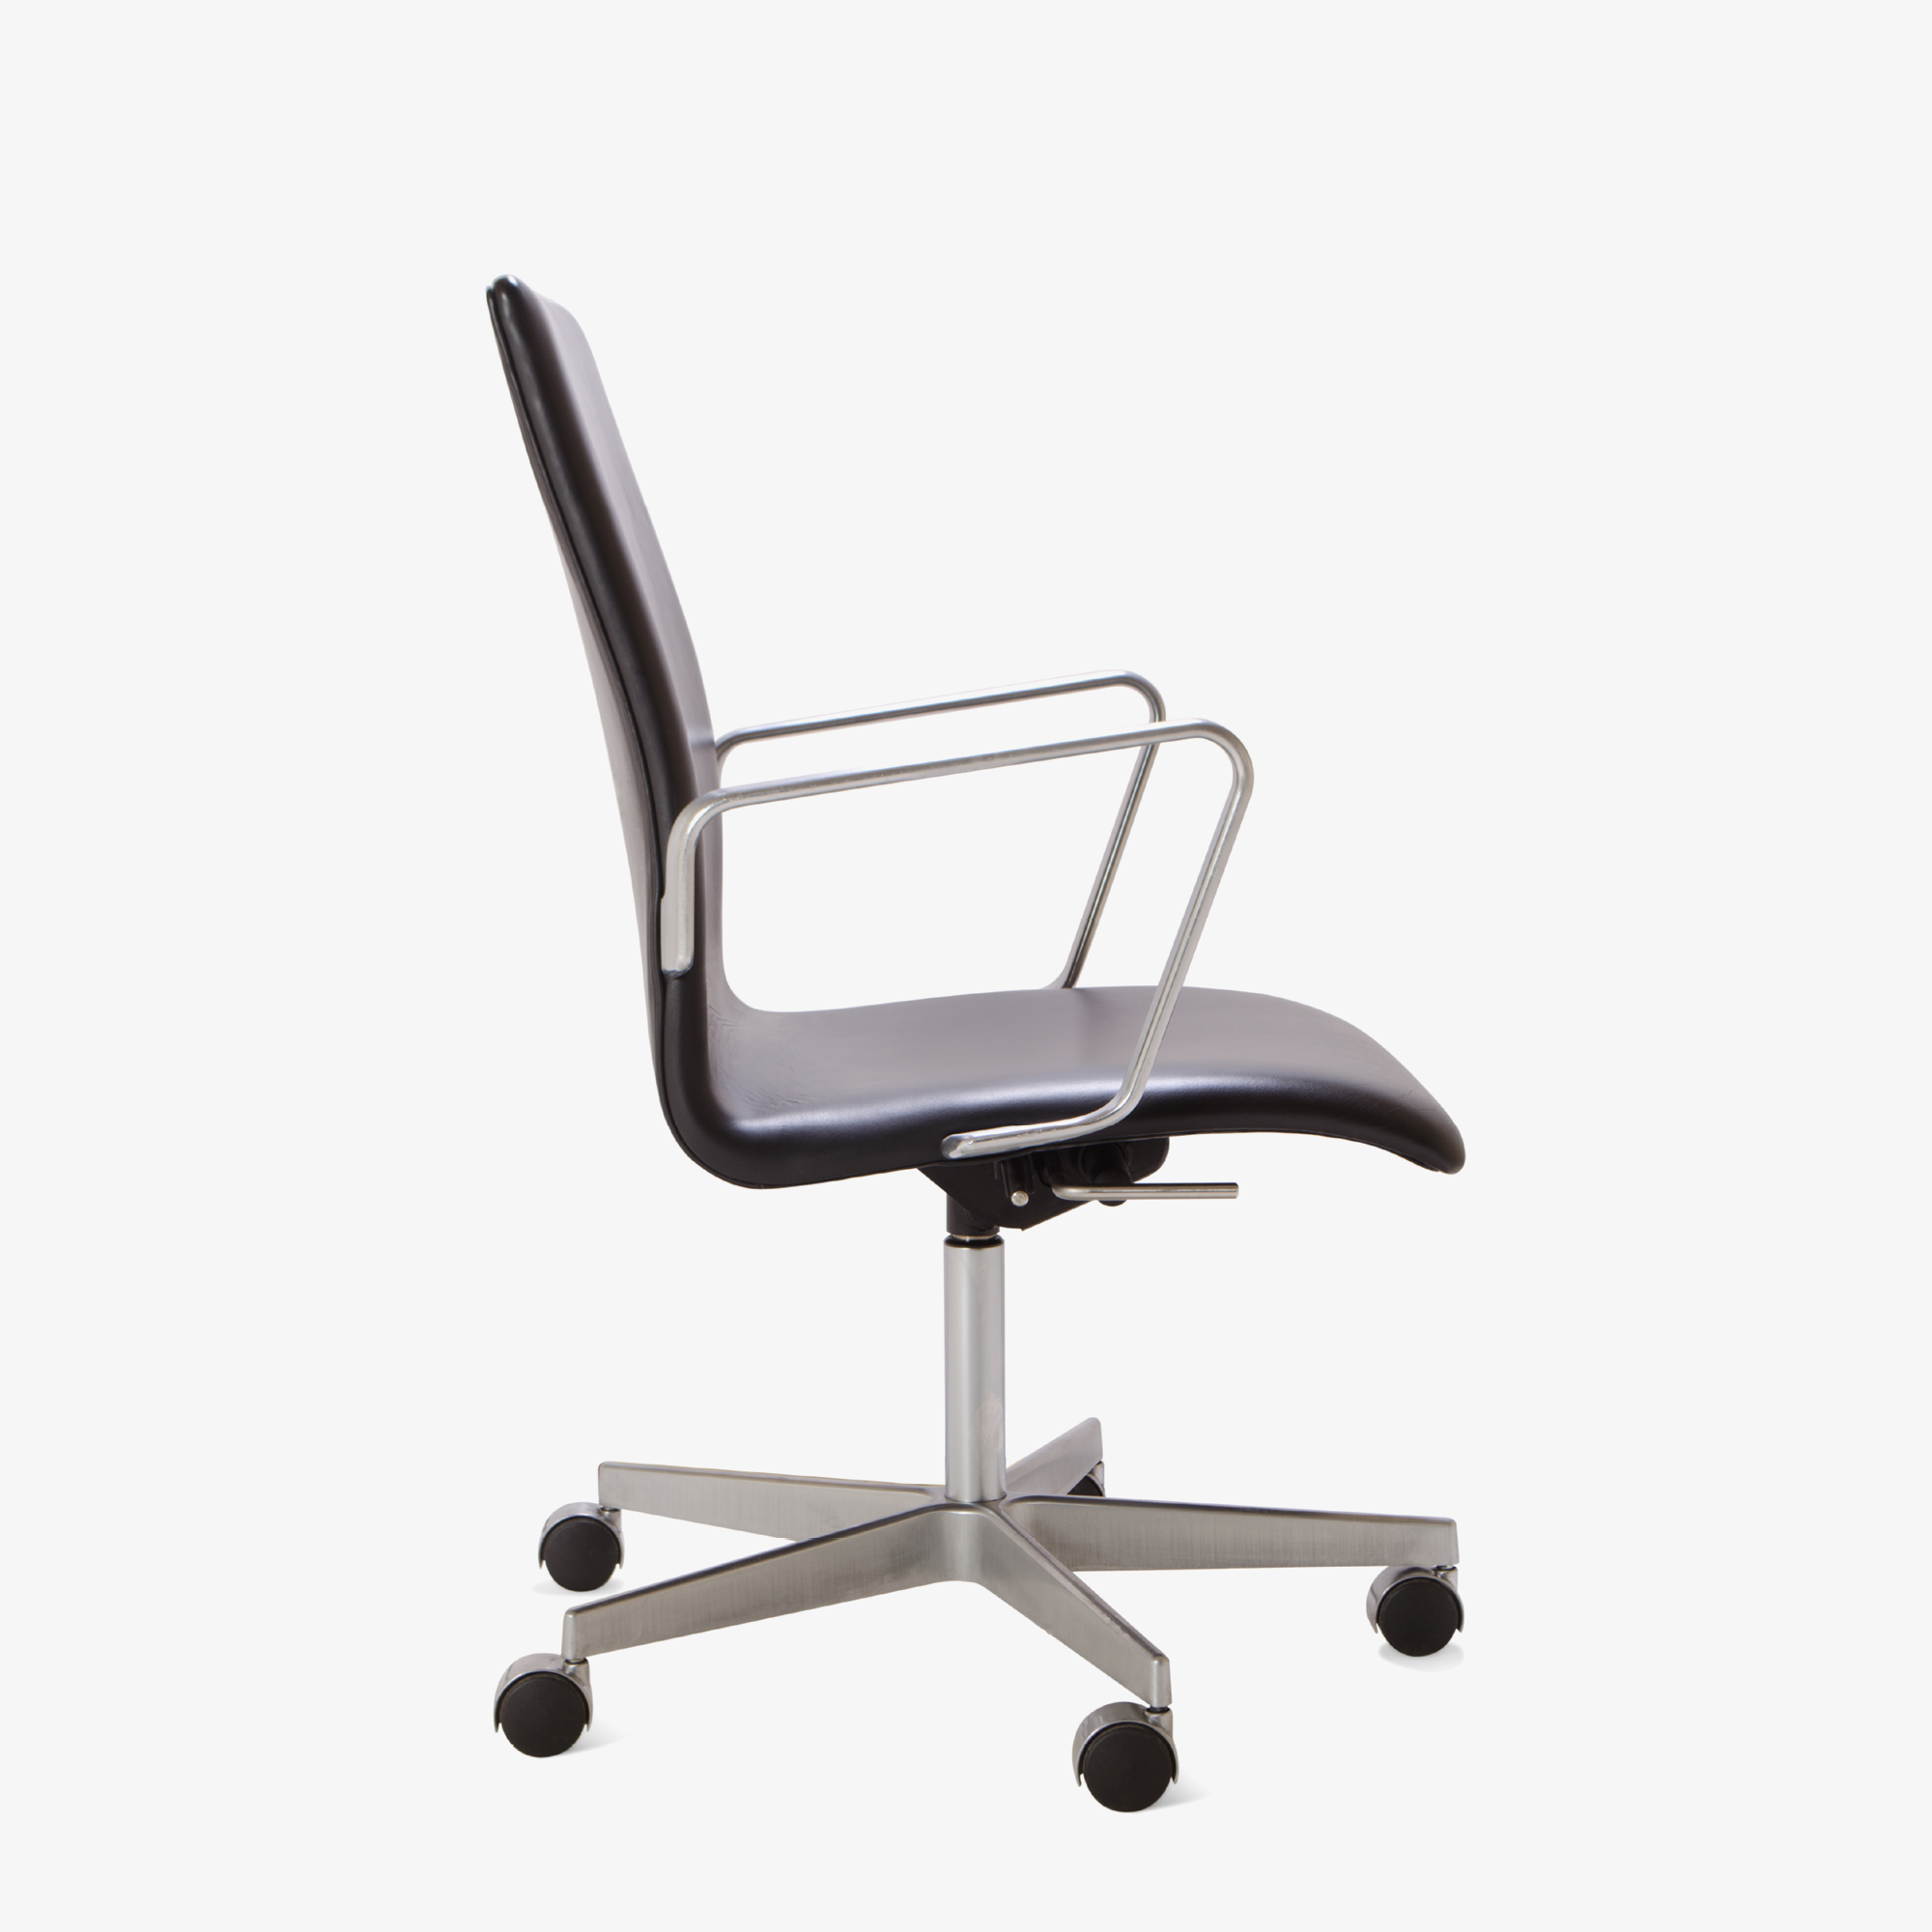 Oxford Low-Back Chair in Leather by Arne Jacobsen for Fritz Hansen - Image 3 & Oxford Low-Back Chair in Leather by Arne Jacobsen for Fritz Hansen ...